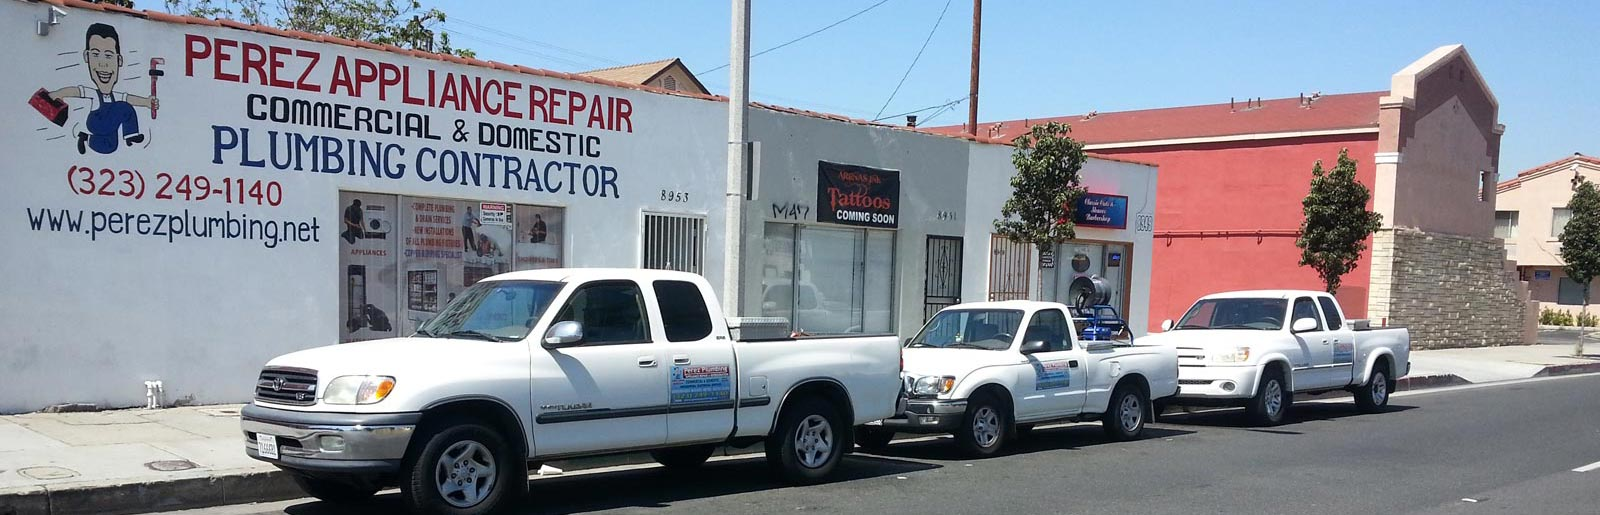 Plumbers Services in Pico Rivera